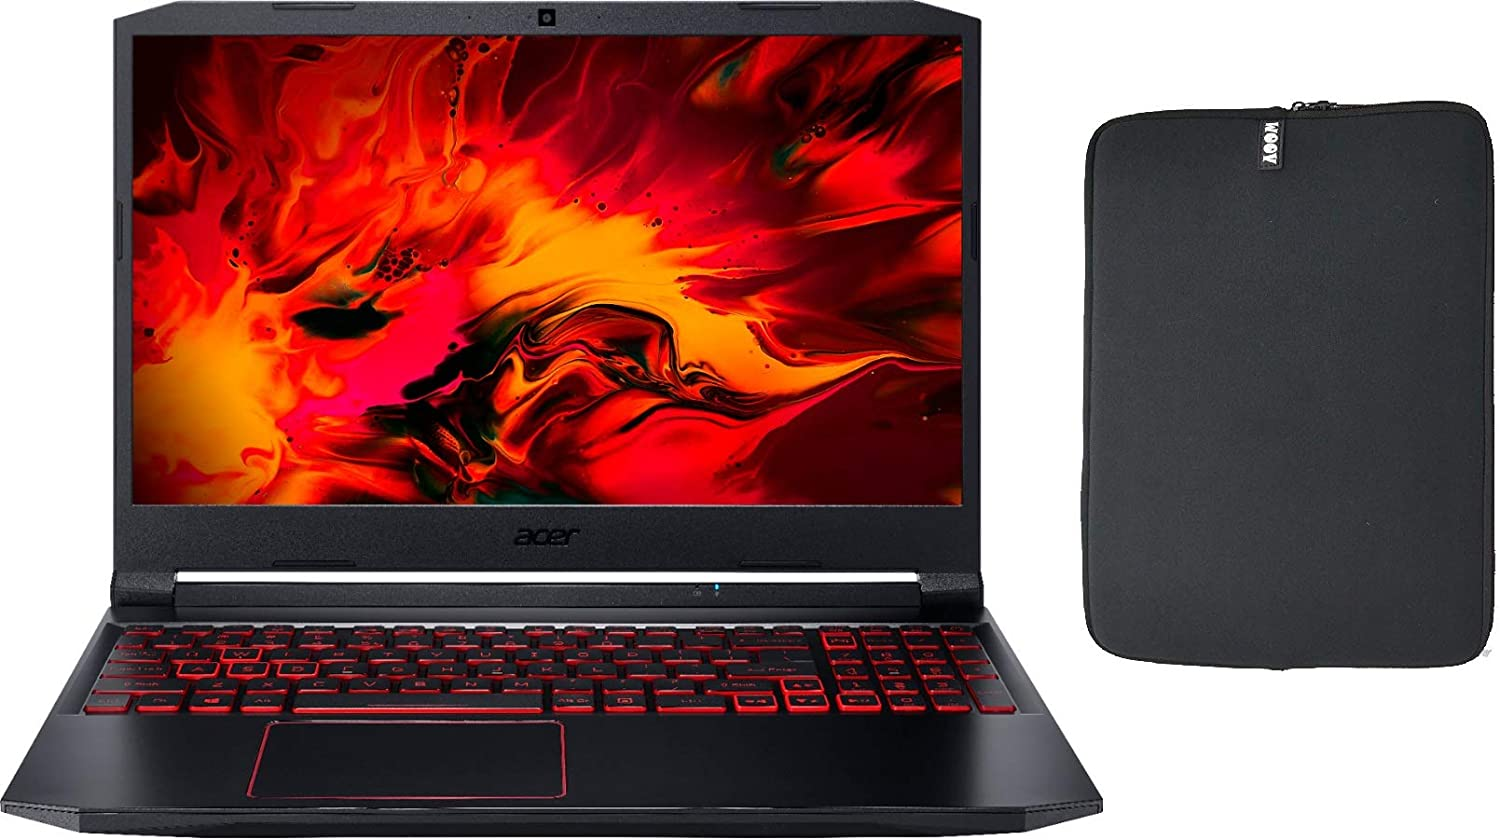 "Acer Nitro 5 15.6"" FHD IPS Gaming Laptop w/ Woov Sleeve, Intel Quad-Core i5-10300H, 12GB RAM, 512GB PCIe SSD, NVIDIA GeForce GTX 1650 4GB, Backlit Keyboard, USB-C, HDMI, Windows 10 Home"